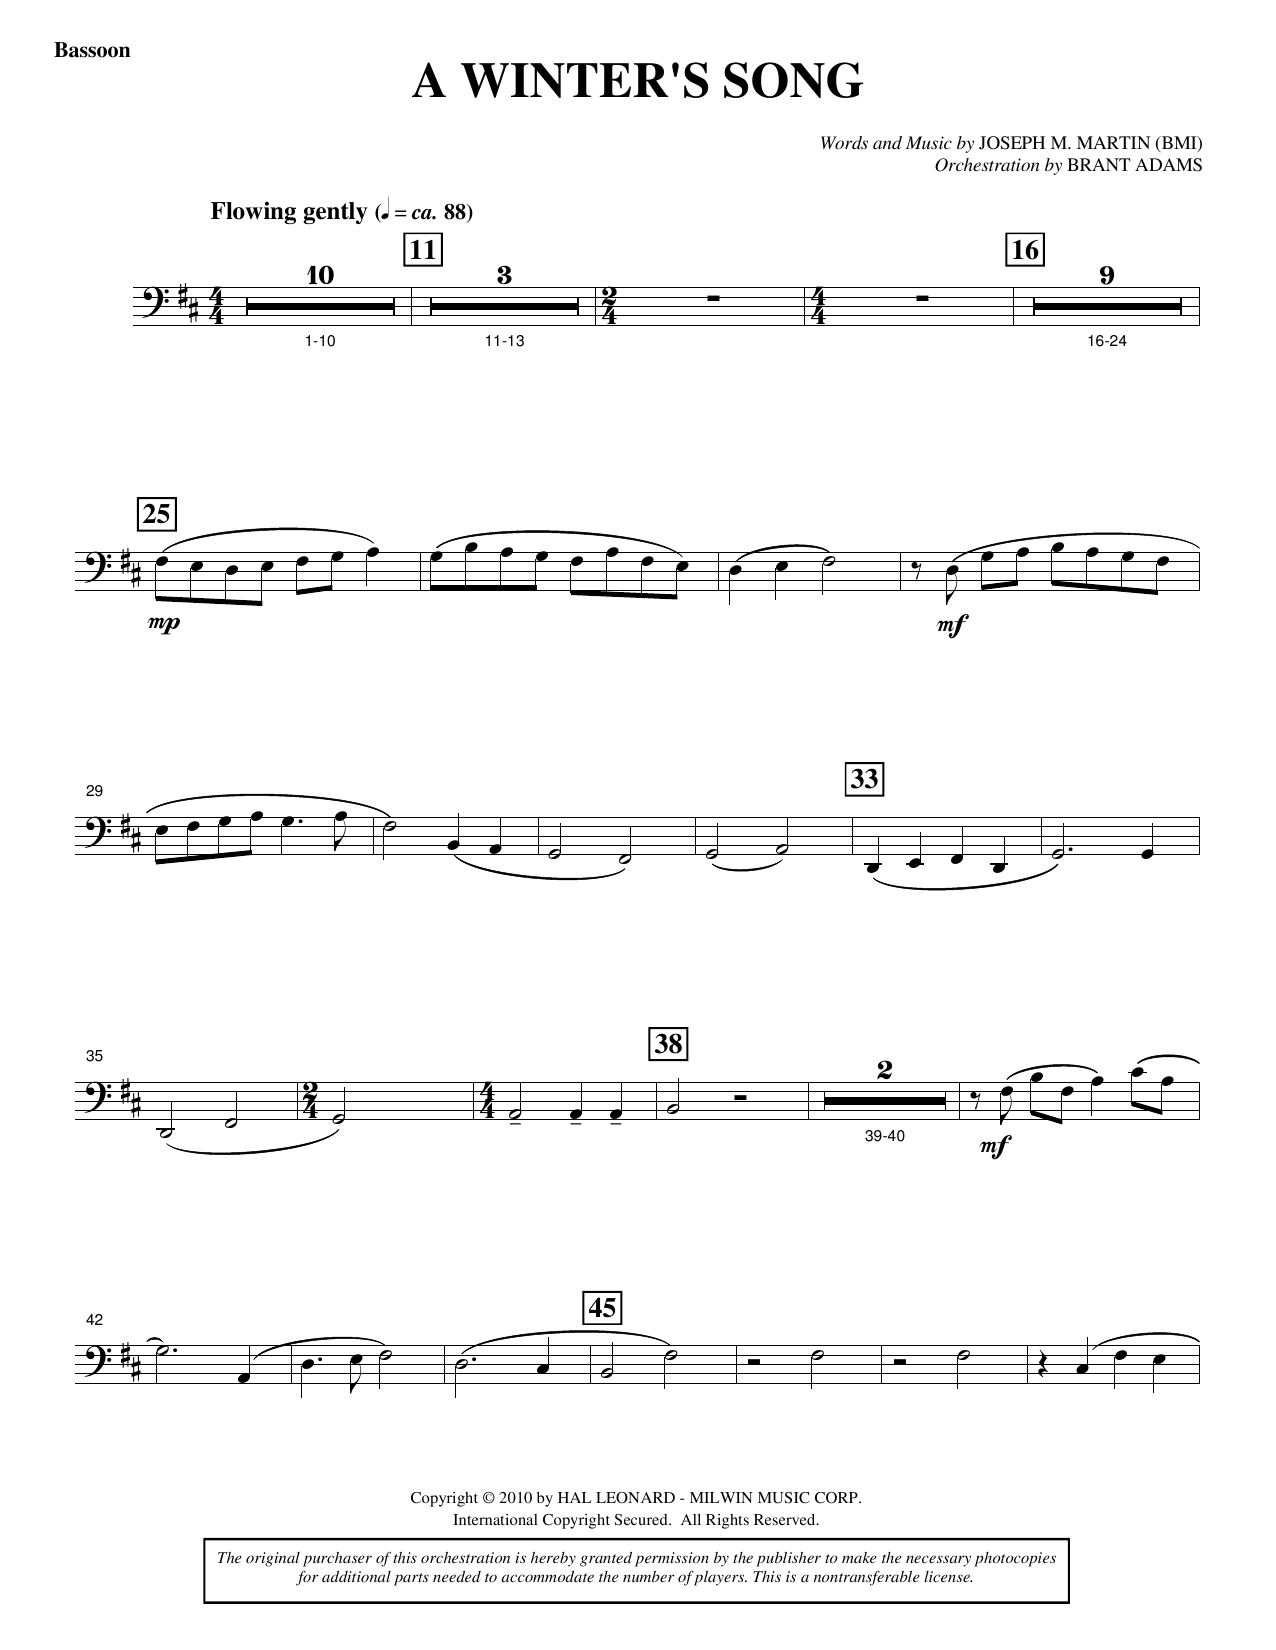 Joseph M. Martin A Winter's Song (from Winter's Grace) - Bassoon sheet music notes printable PDF score